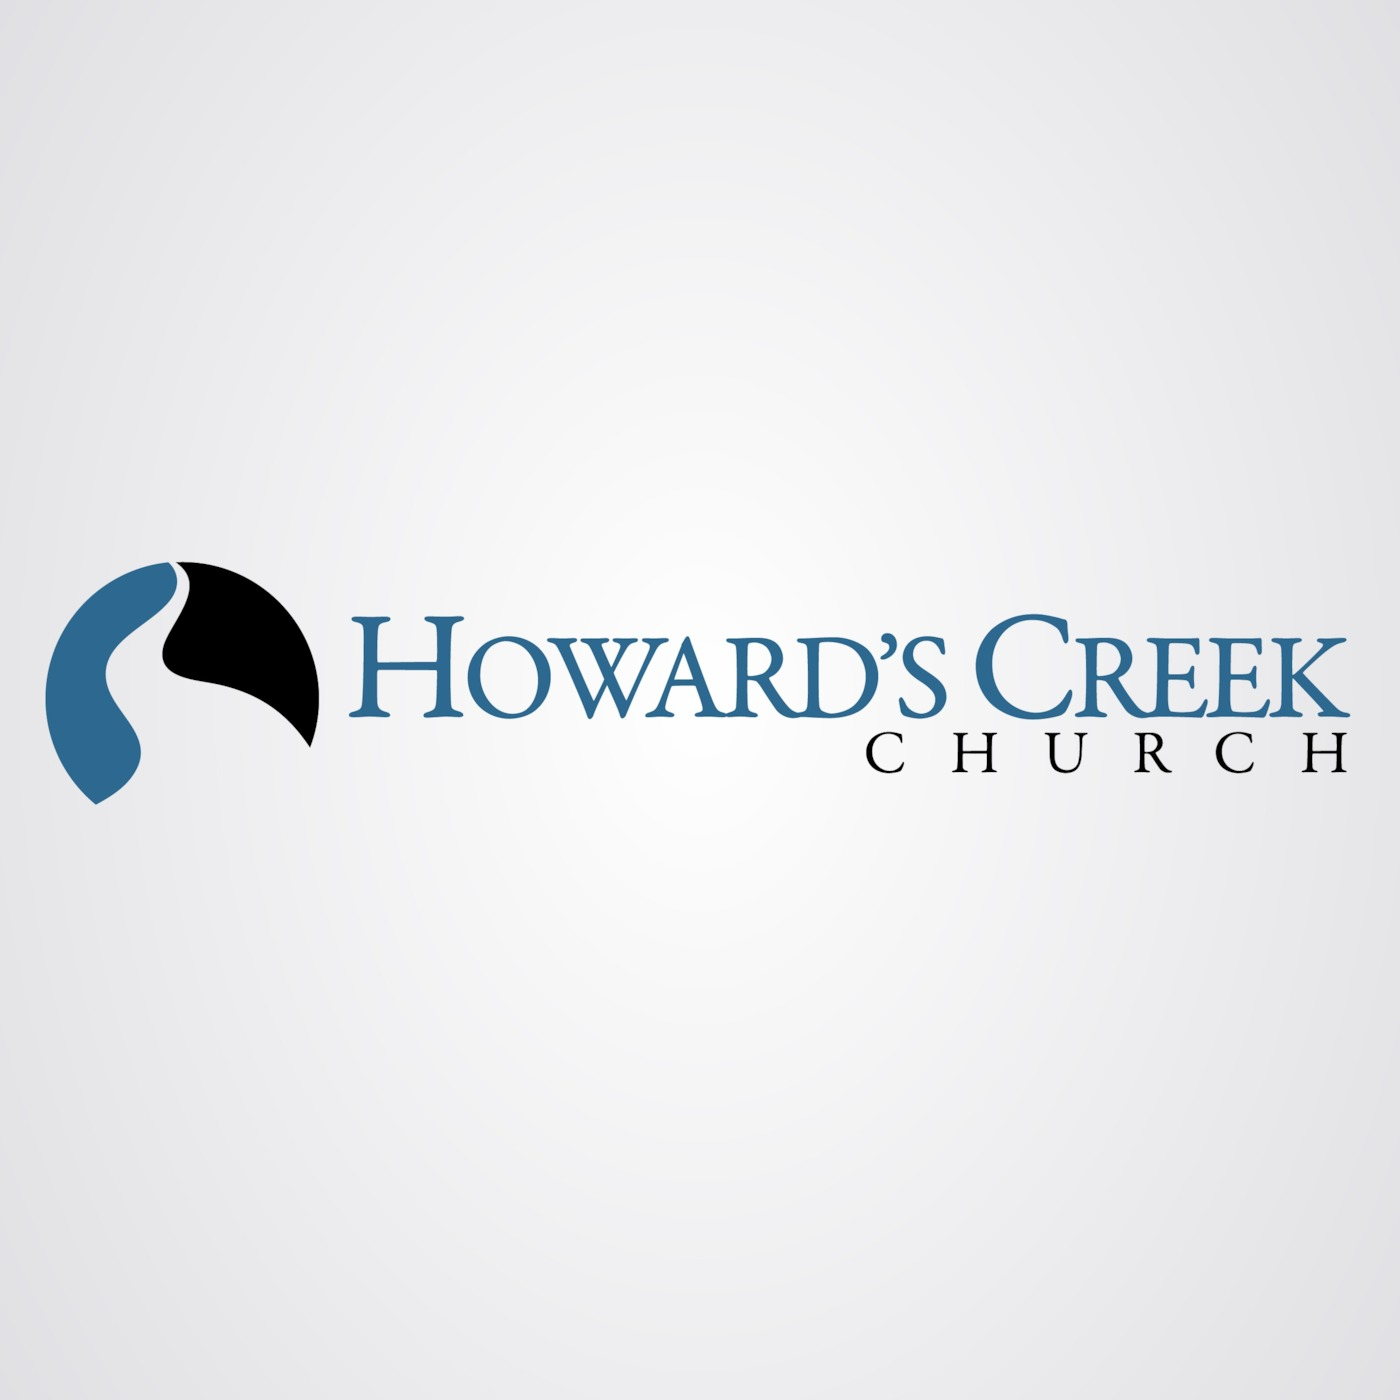 Howard's Creek Church